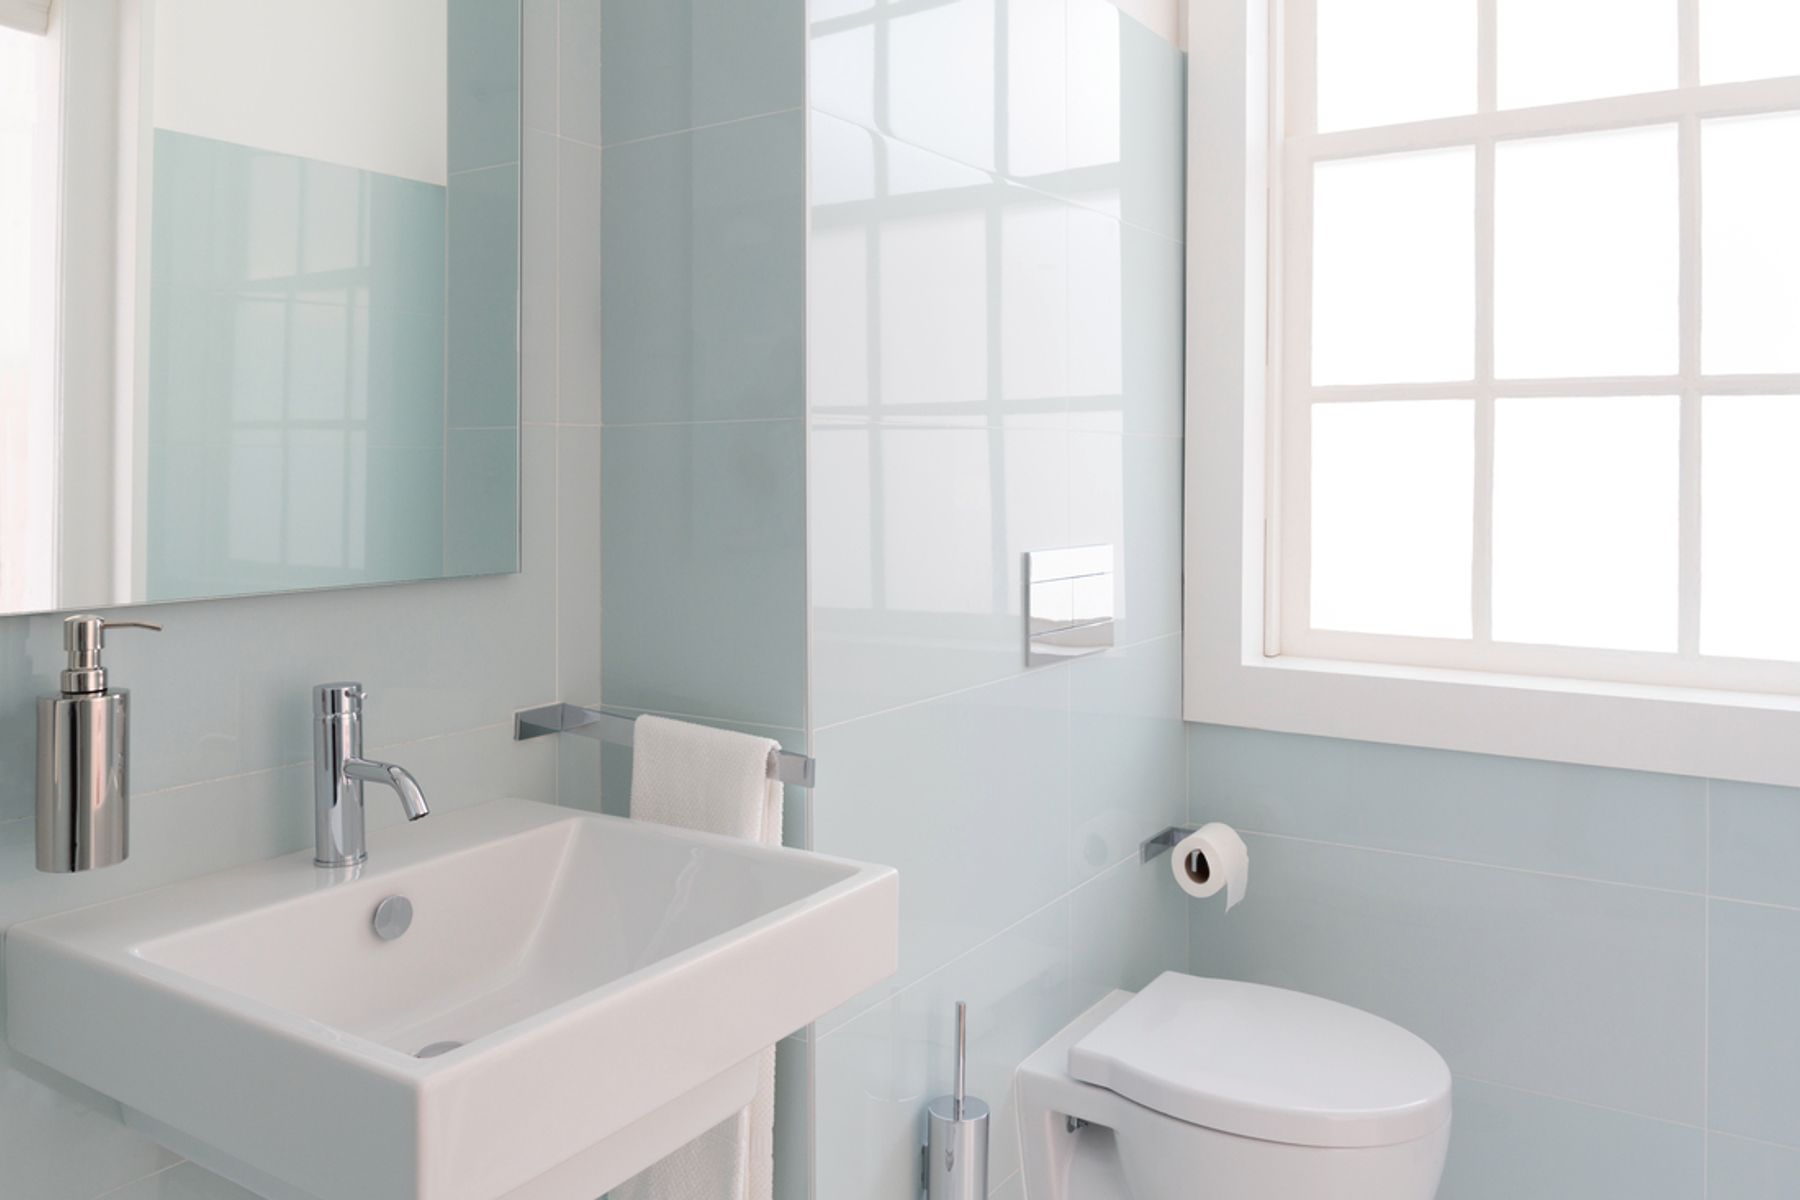 Image of a sparkling clean bathroom